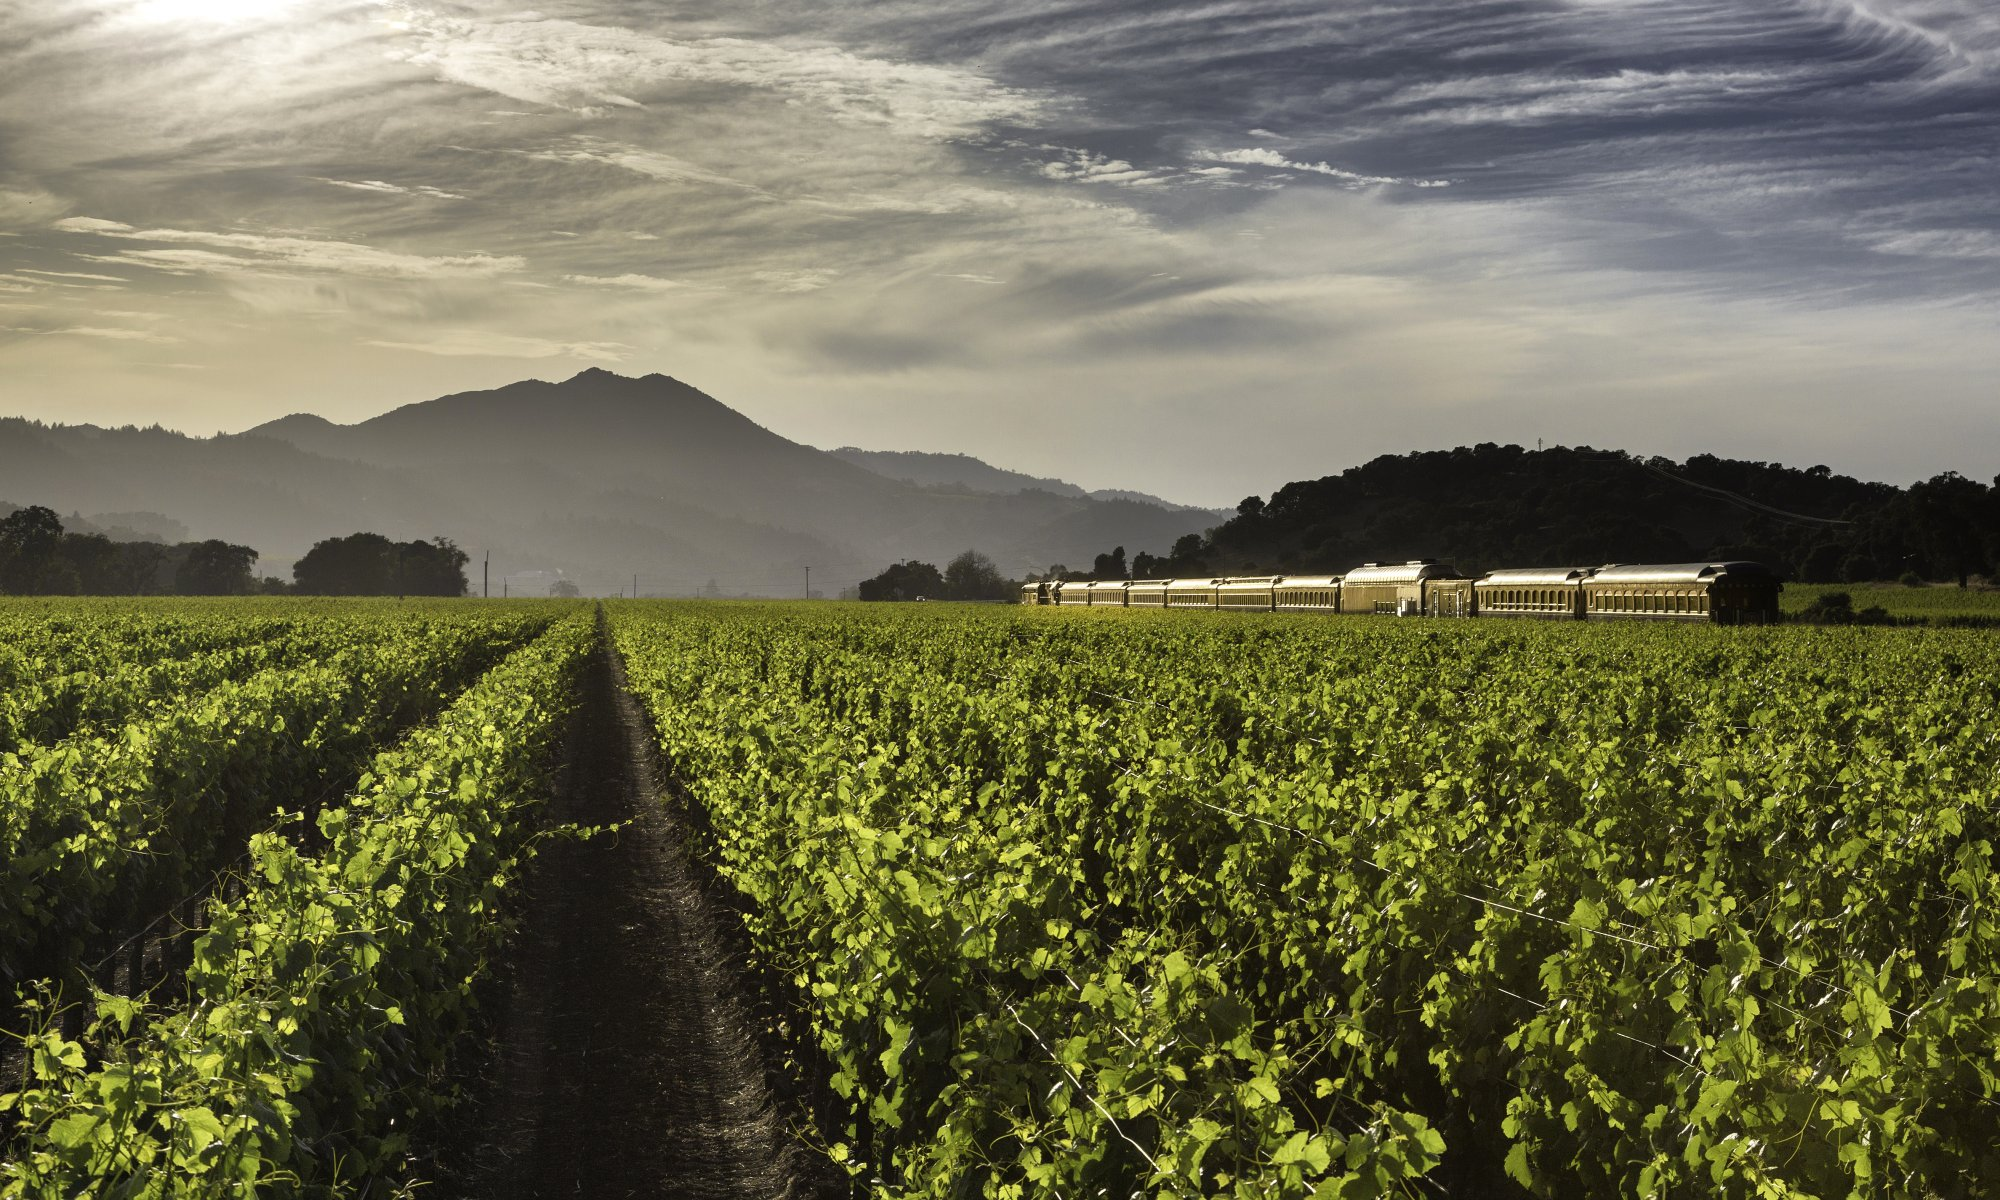 The Napa Valley Wine Train journeys alongside a lush green vineyard in summer.